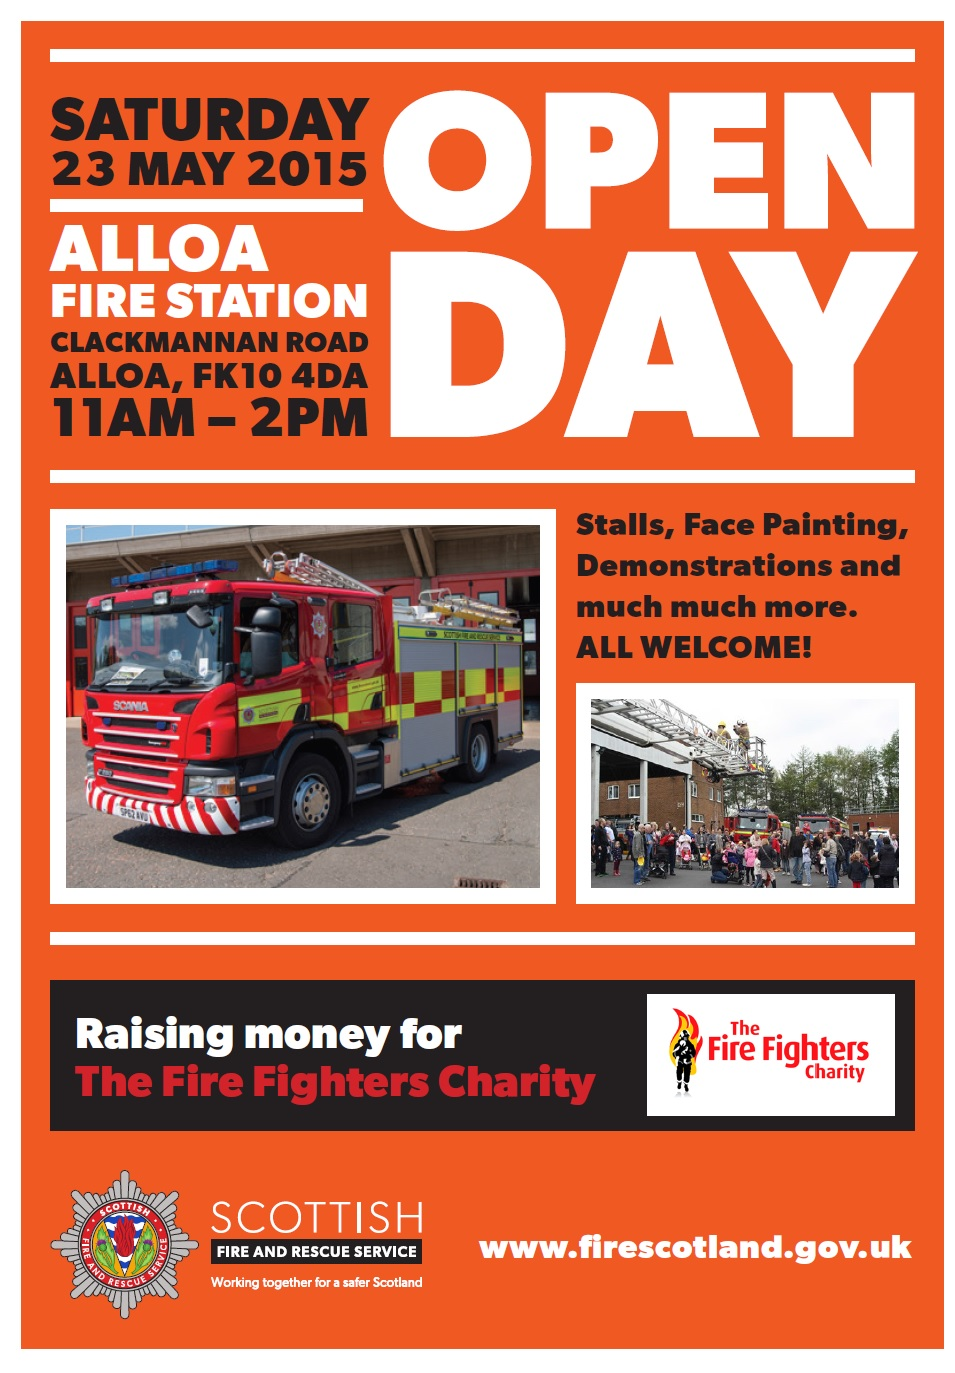 Open day at Alloa fire station